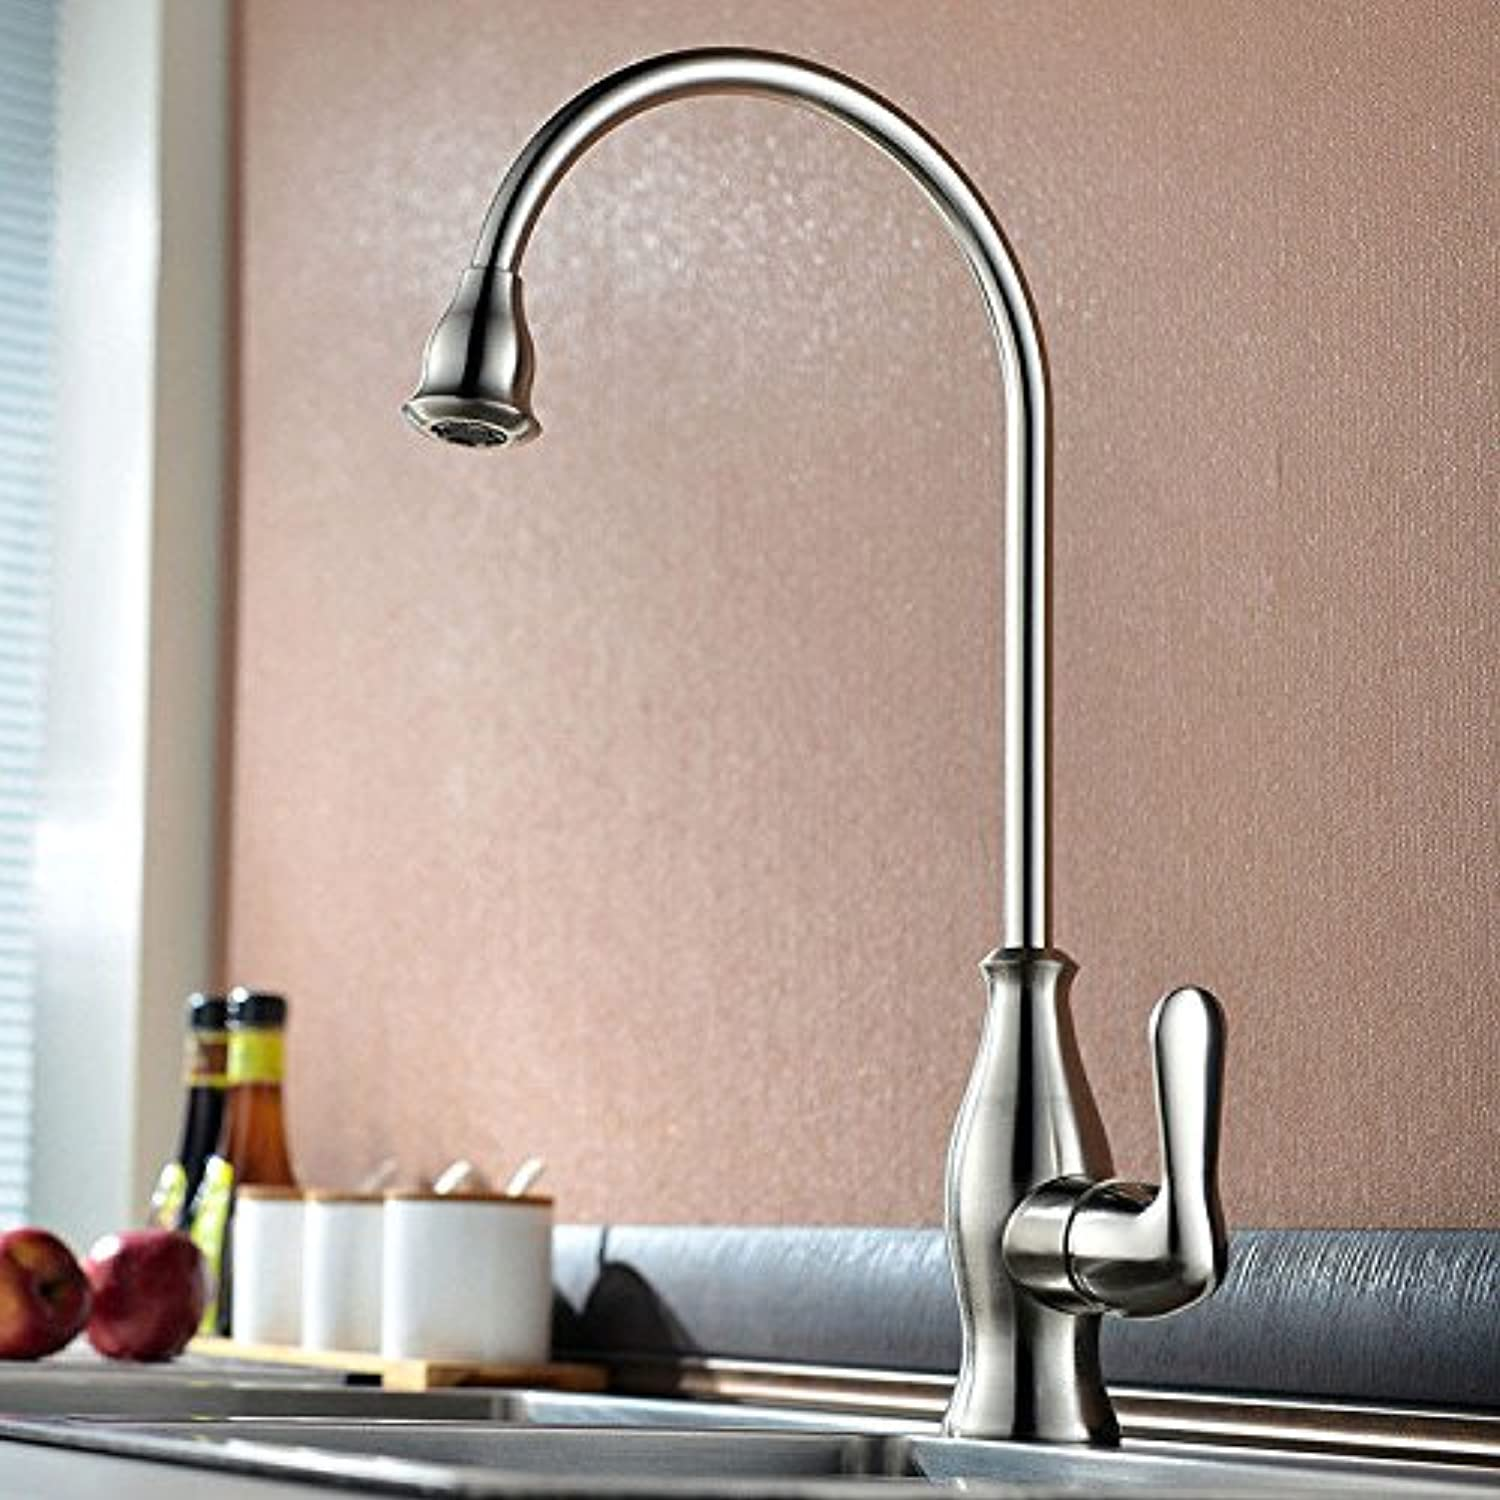 Gyps Faucet Basin Mixer Tap Waterfall Faucet Antique Bathroom Modern simple full copper hot and cold kitchen sink faucet kitchen faucet B as a whole. Bathroom Tub Lever Faucet